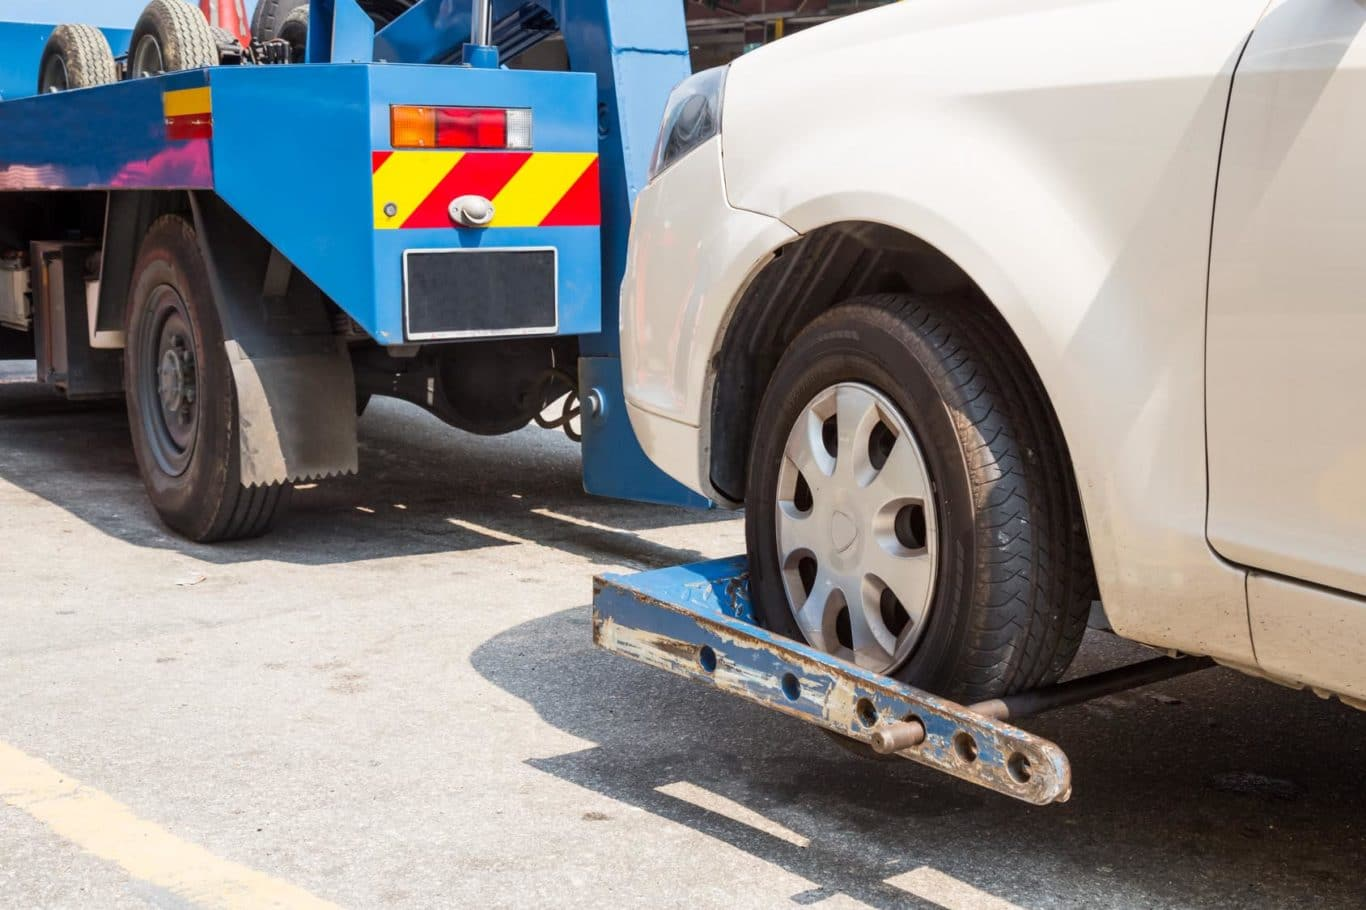 Stratford-on-Slaney expert Tow Truck services